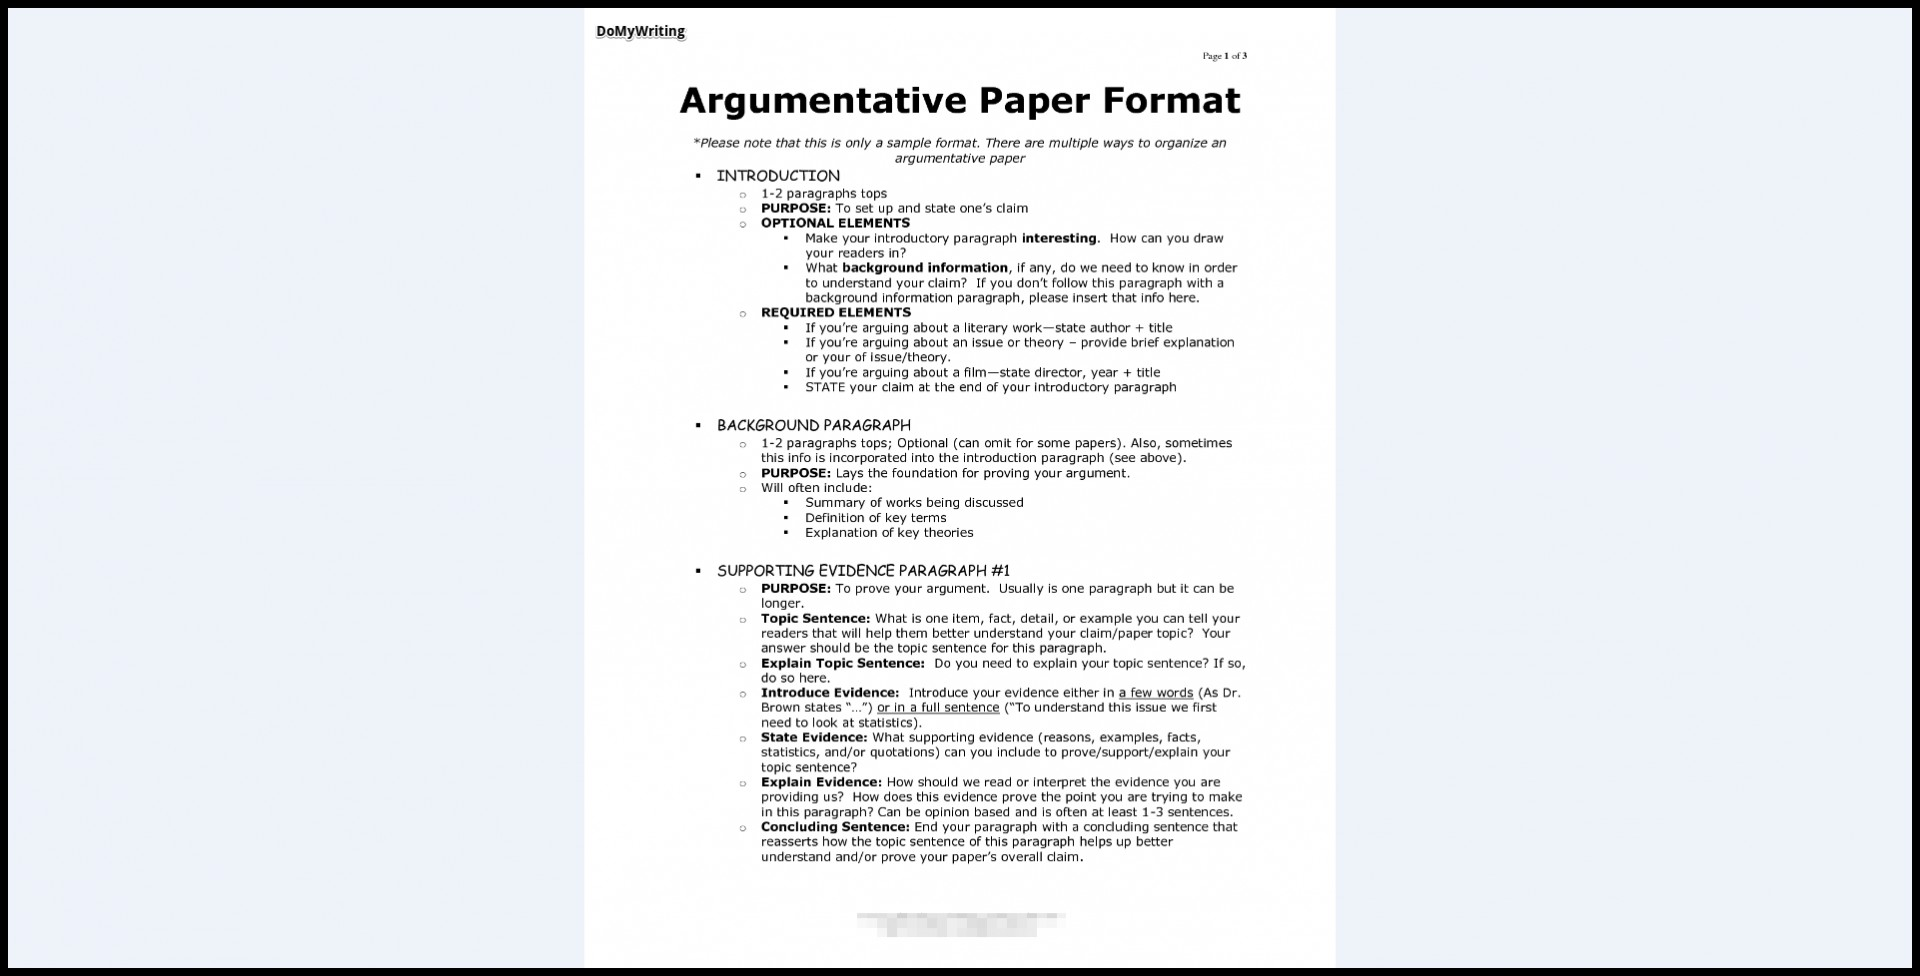 017 Research Paper Argumentative Essay Dreaded Topics College Students Rubric Sample Pdf 1920